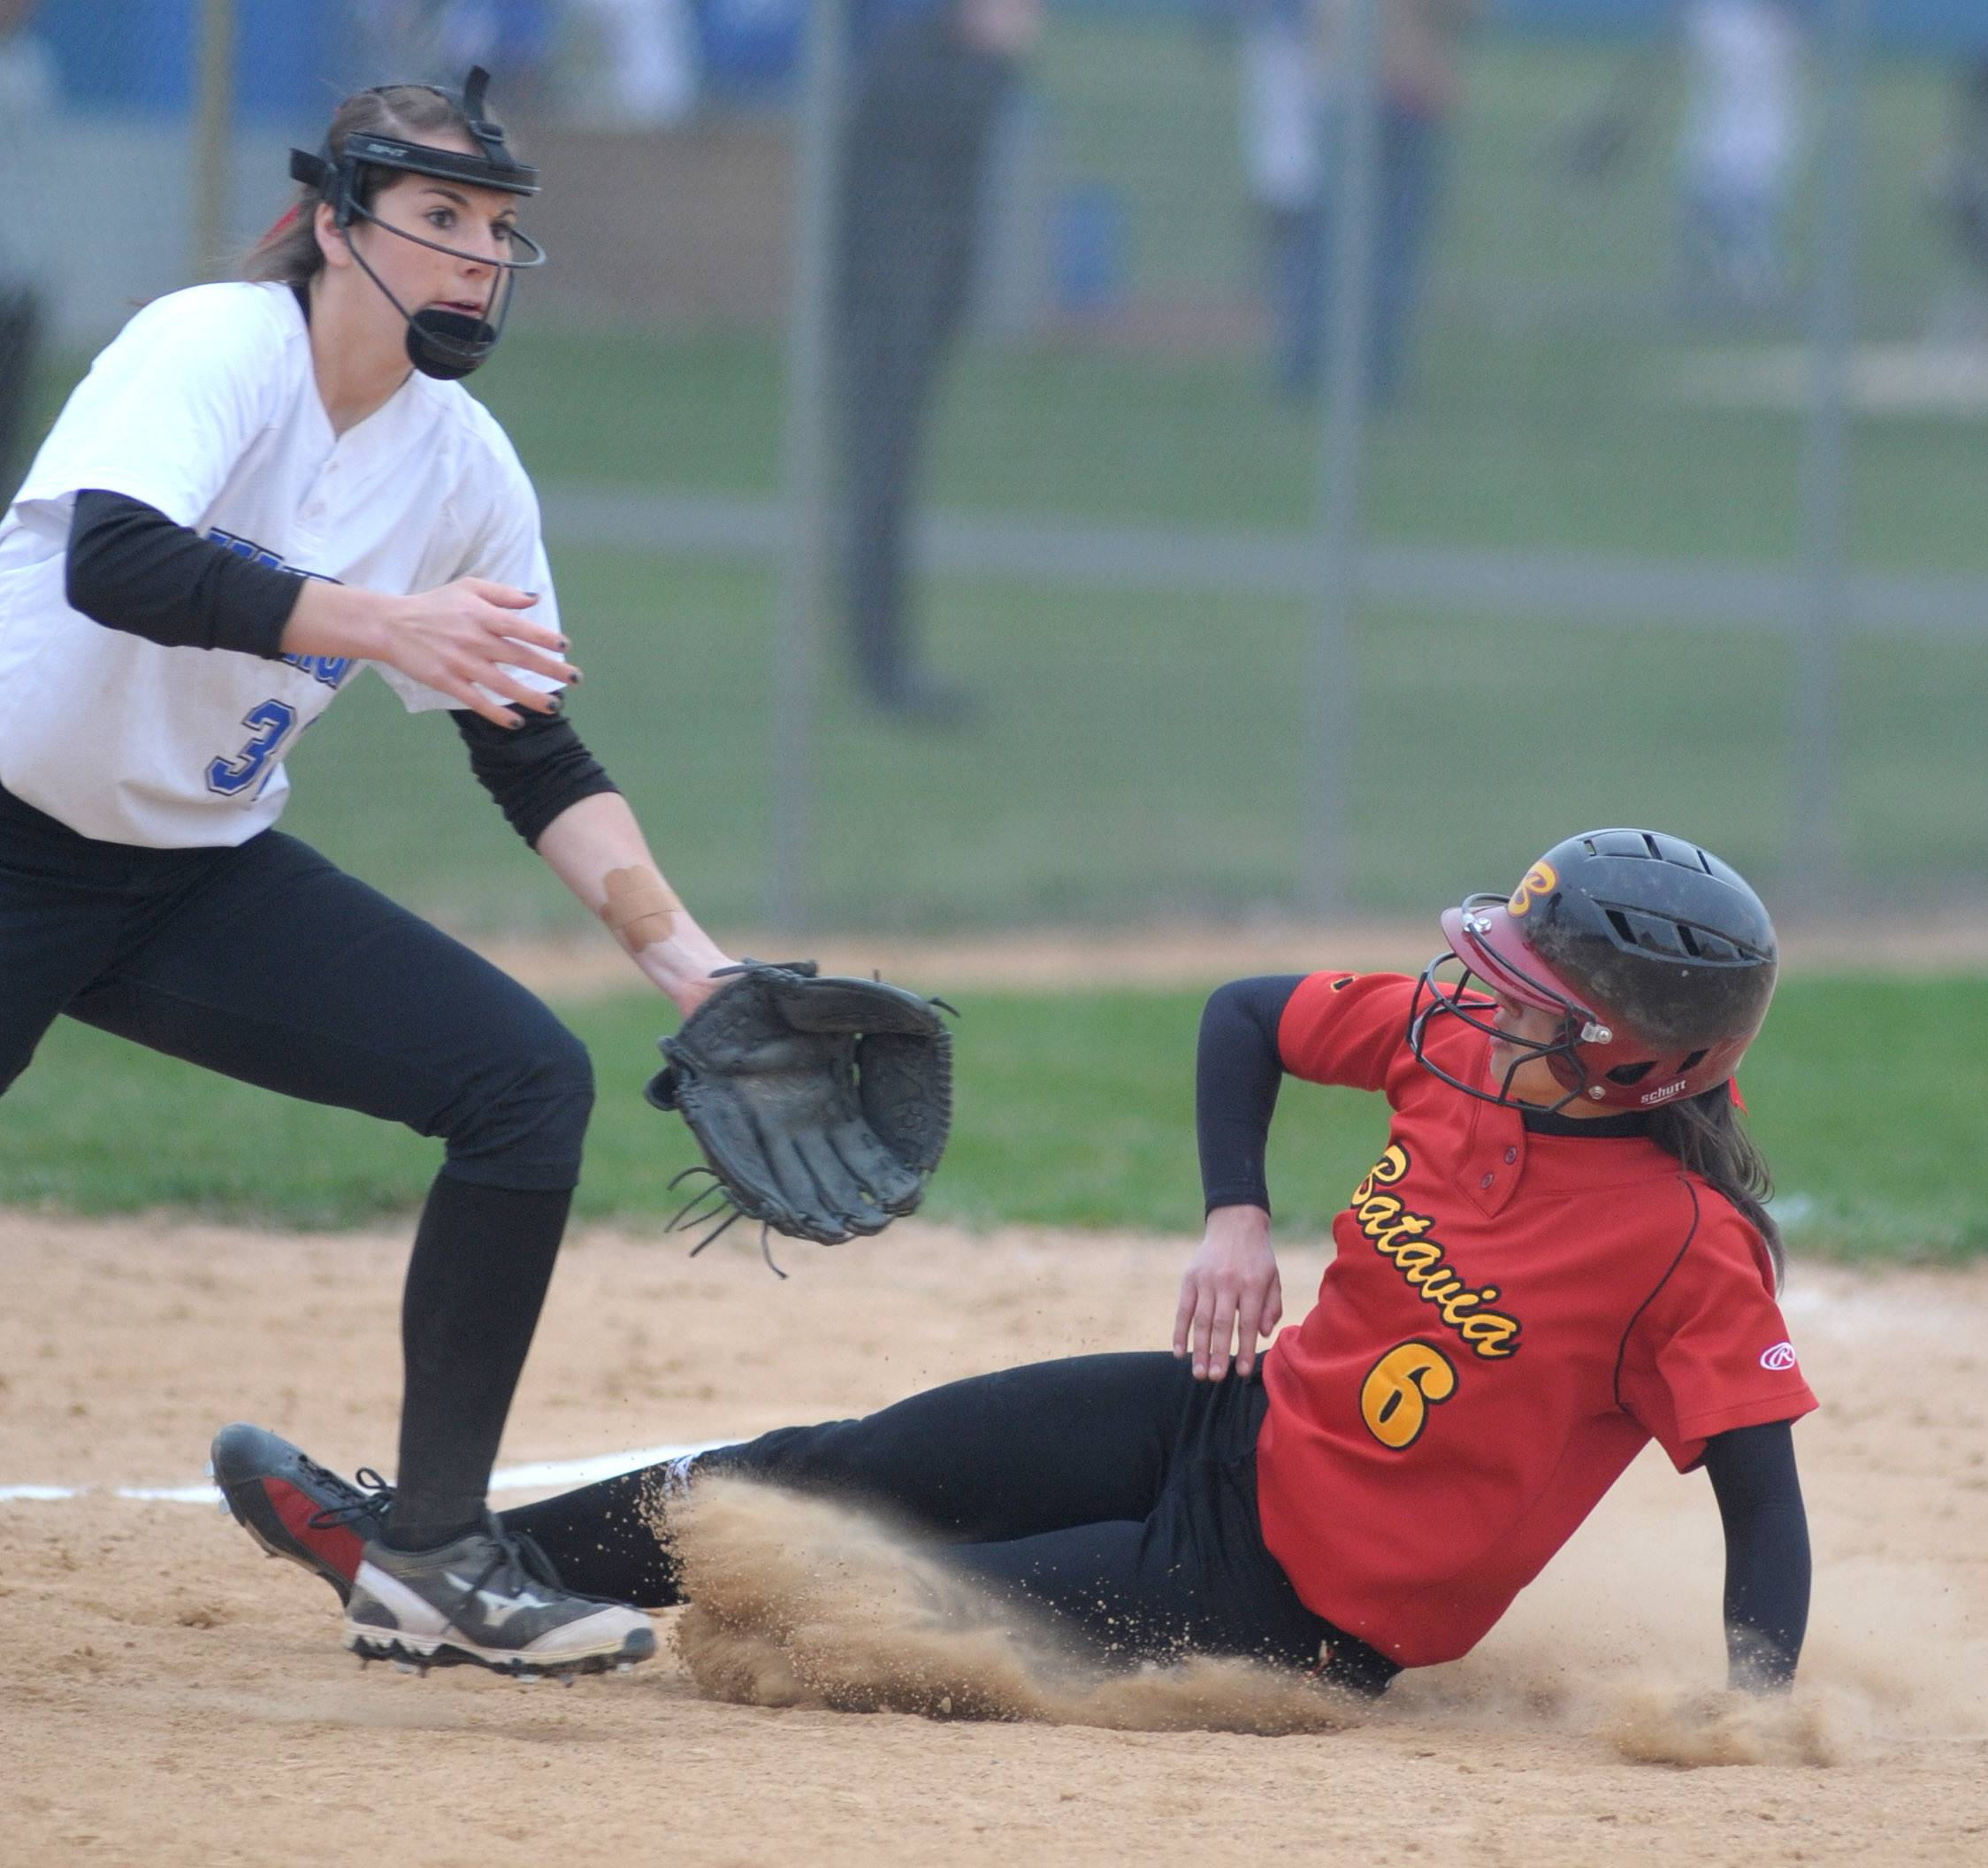 Batavia's Tara Zufan slides safely into third base before the ball hits the mitt of Geneva's Molly Wrenn in the seventh inning on Wednesday, April 23.